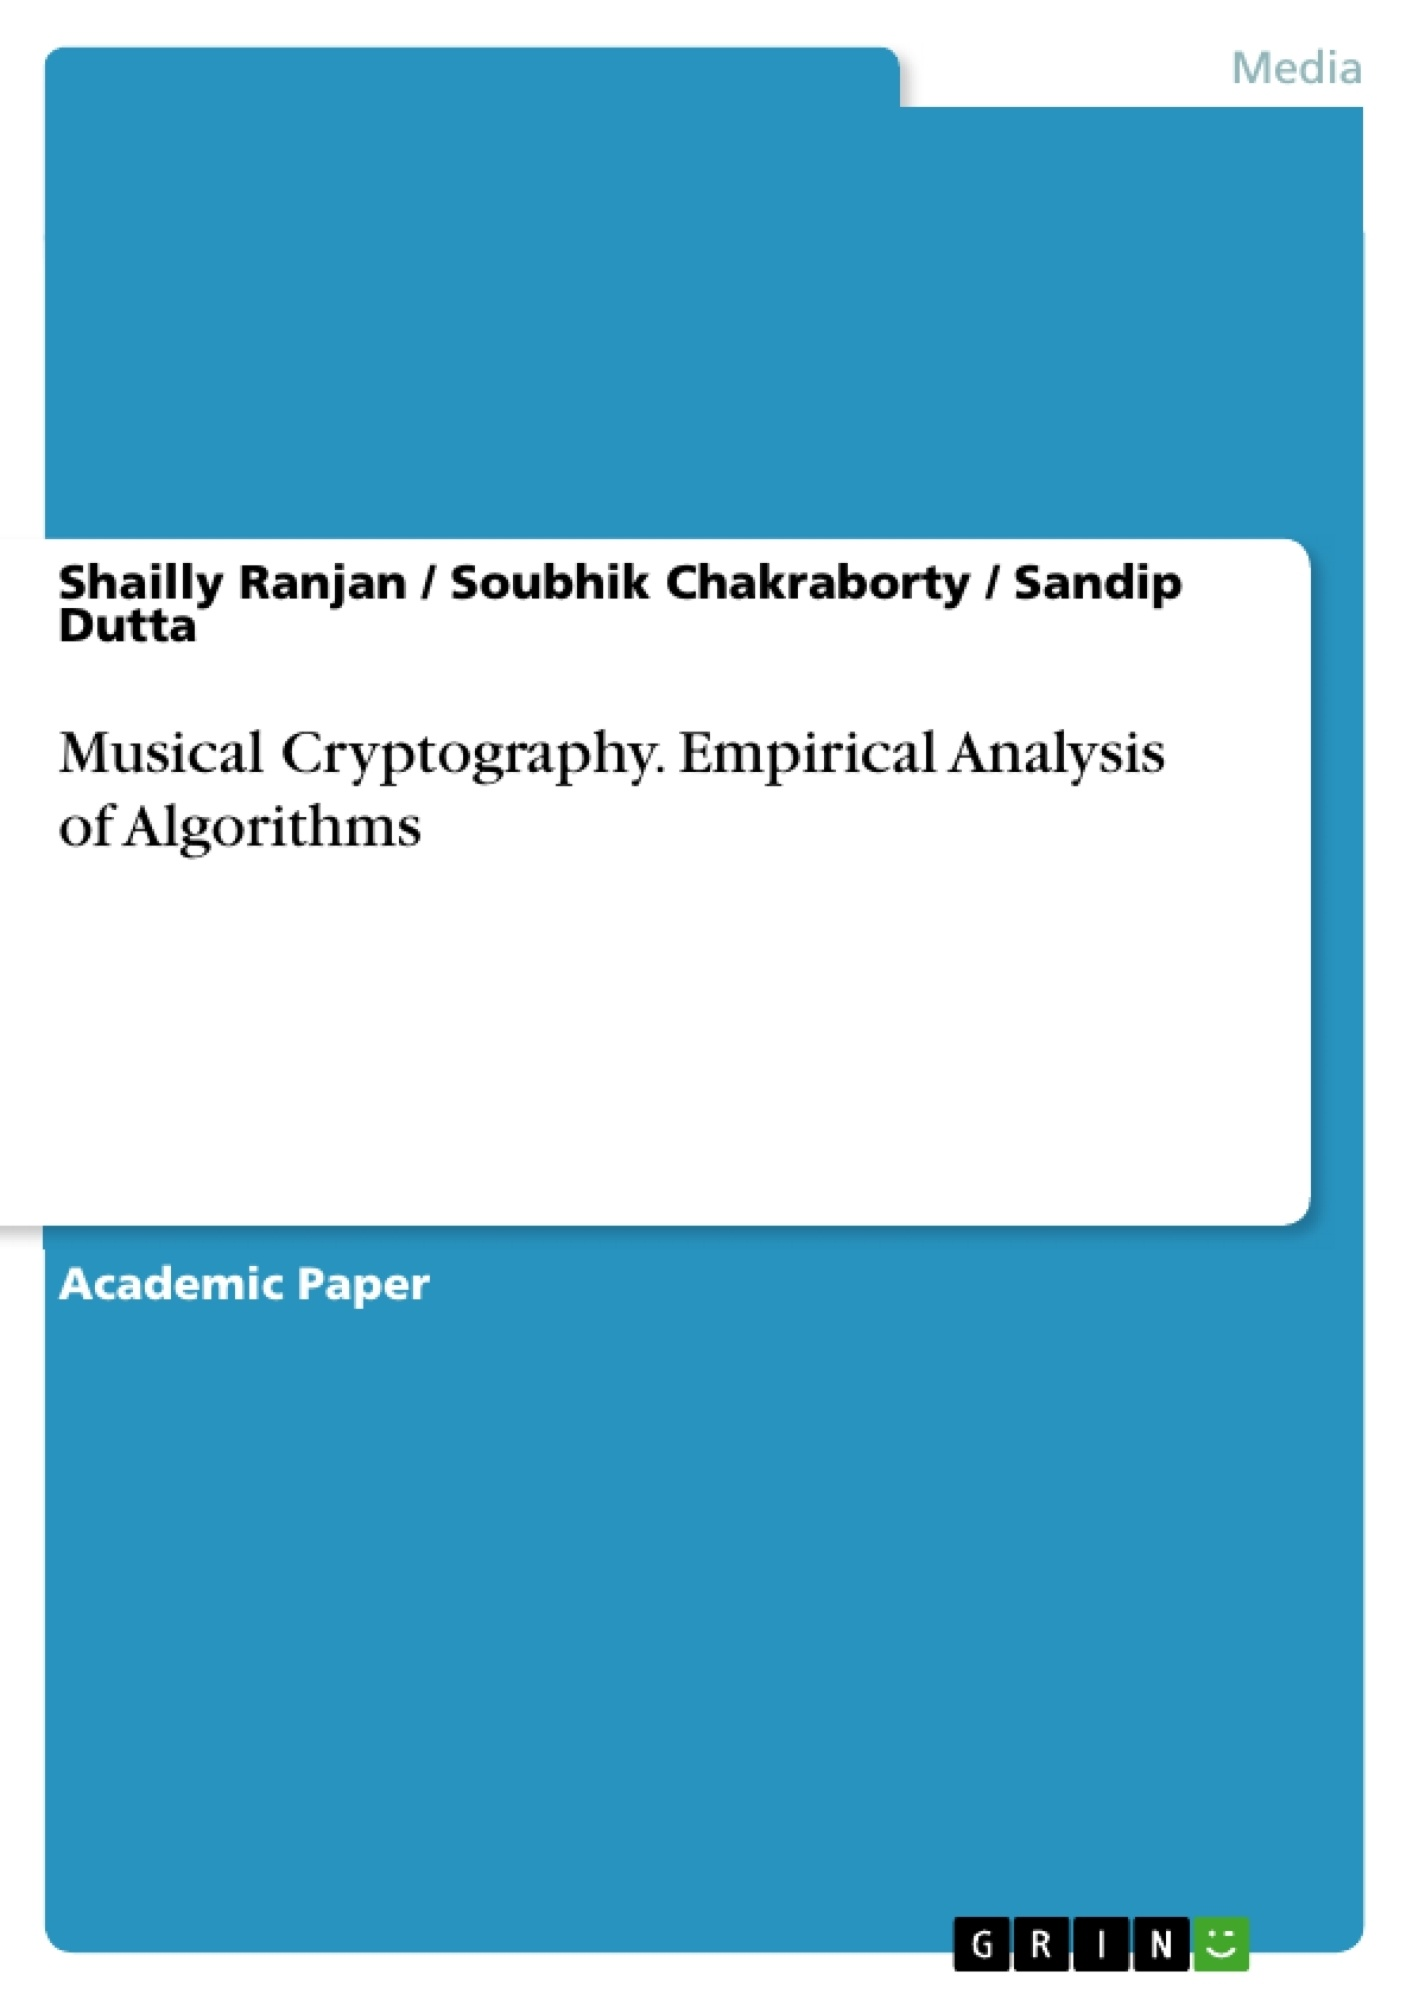 Title: Musical Cryptography. Empirical Analysis of Algorithms